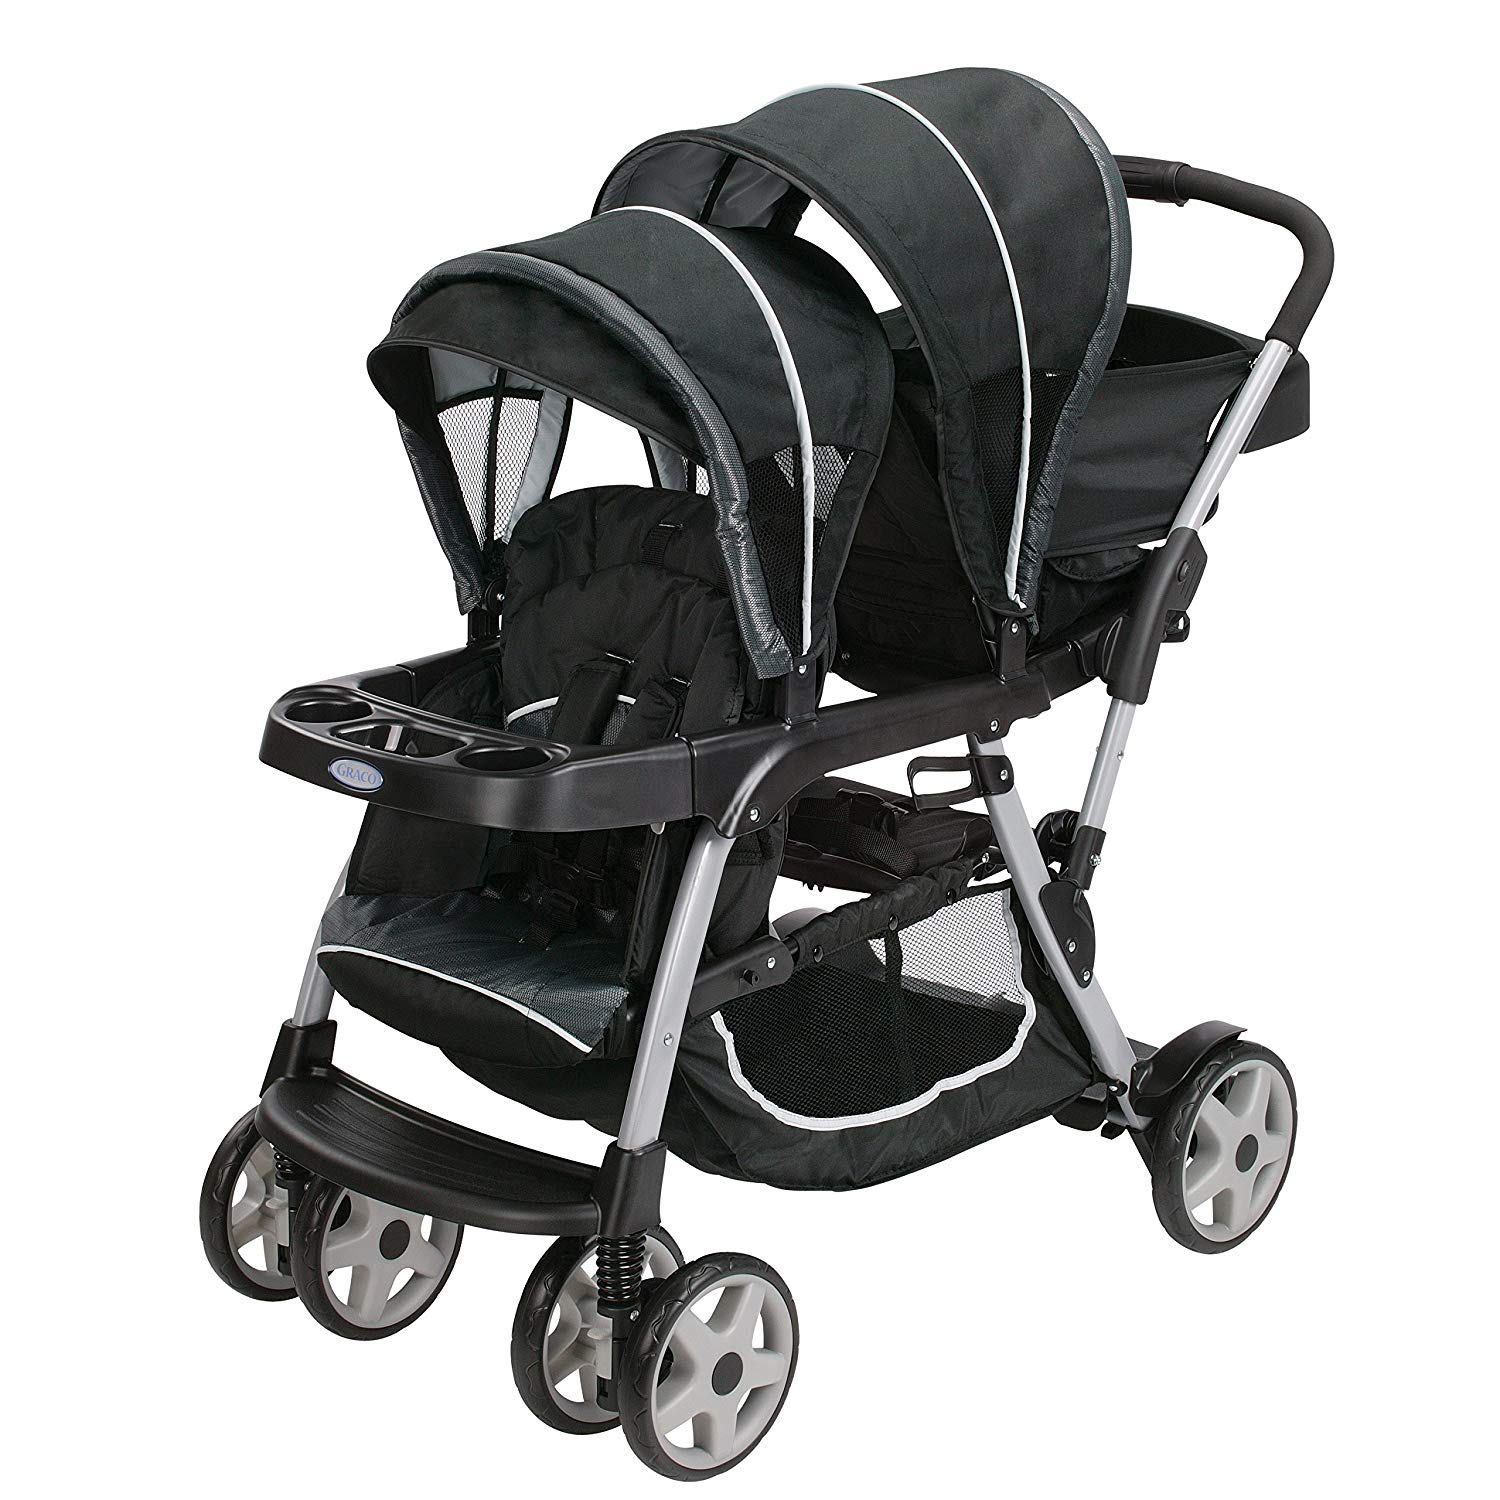 Graco Ready2Grow Lightweight Double Stroller